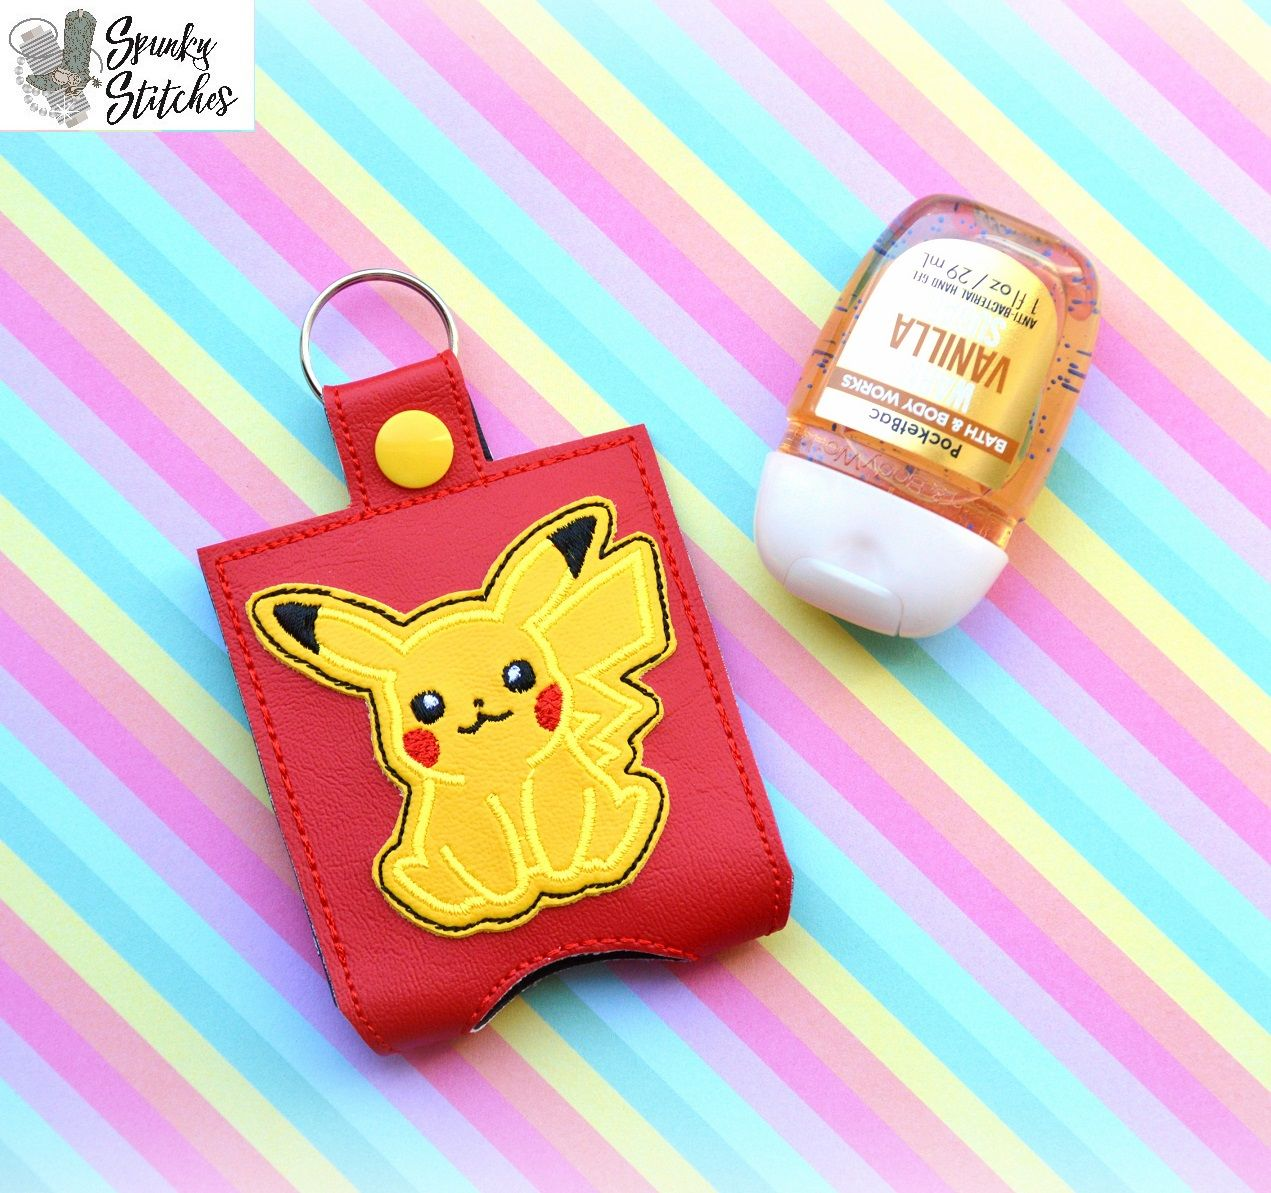 Pikachu Sanitizer Holder Key Fob Hand Sanitizer Holder